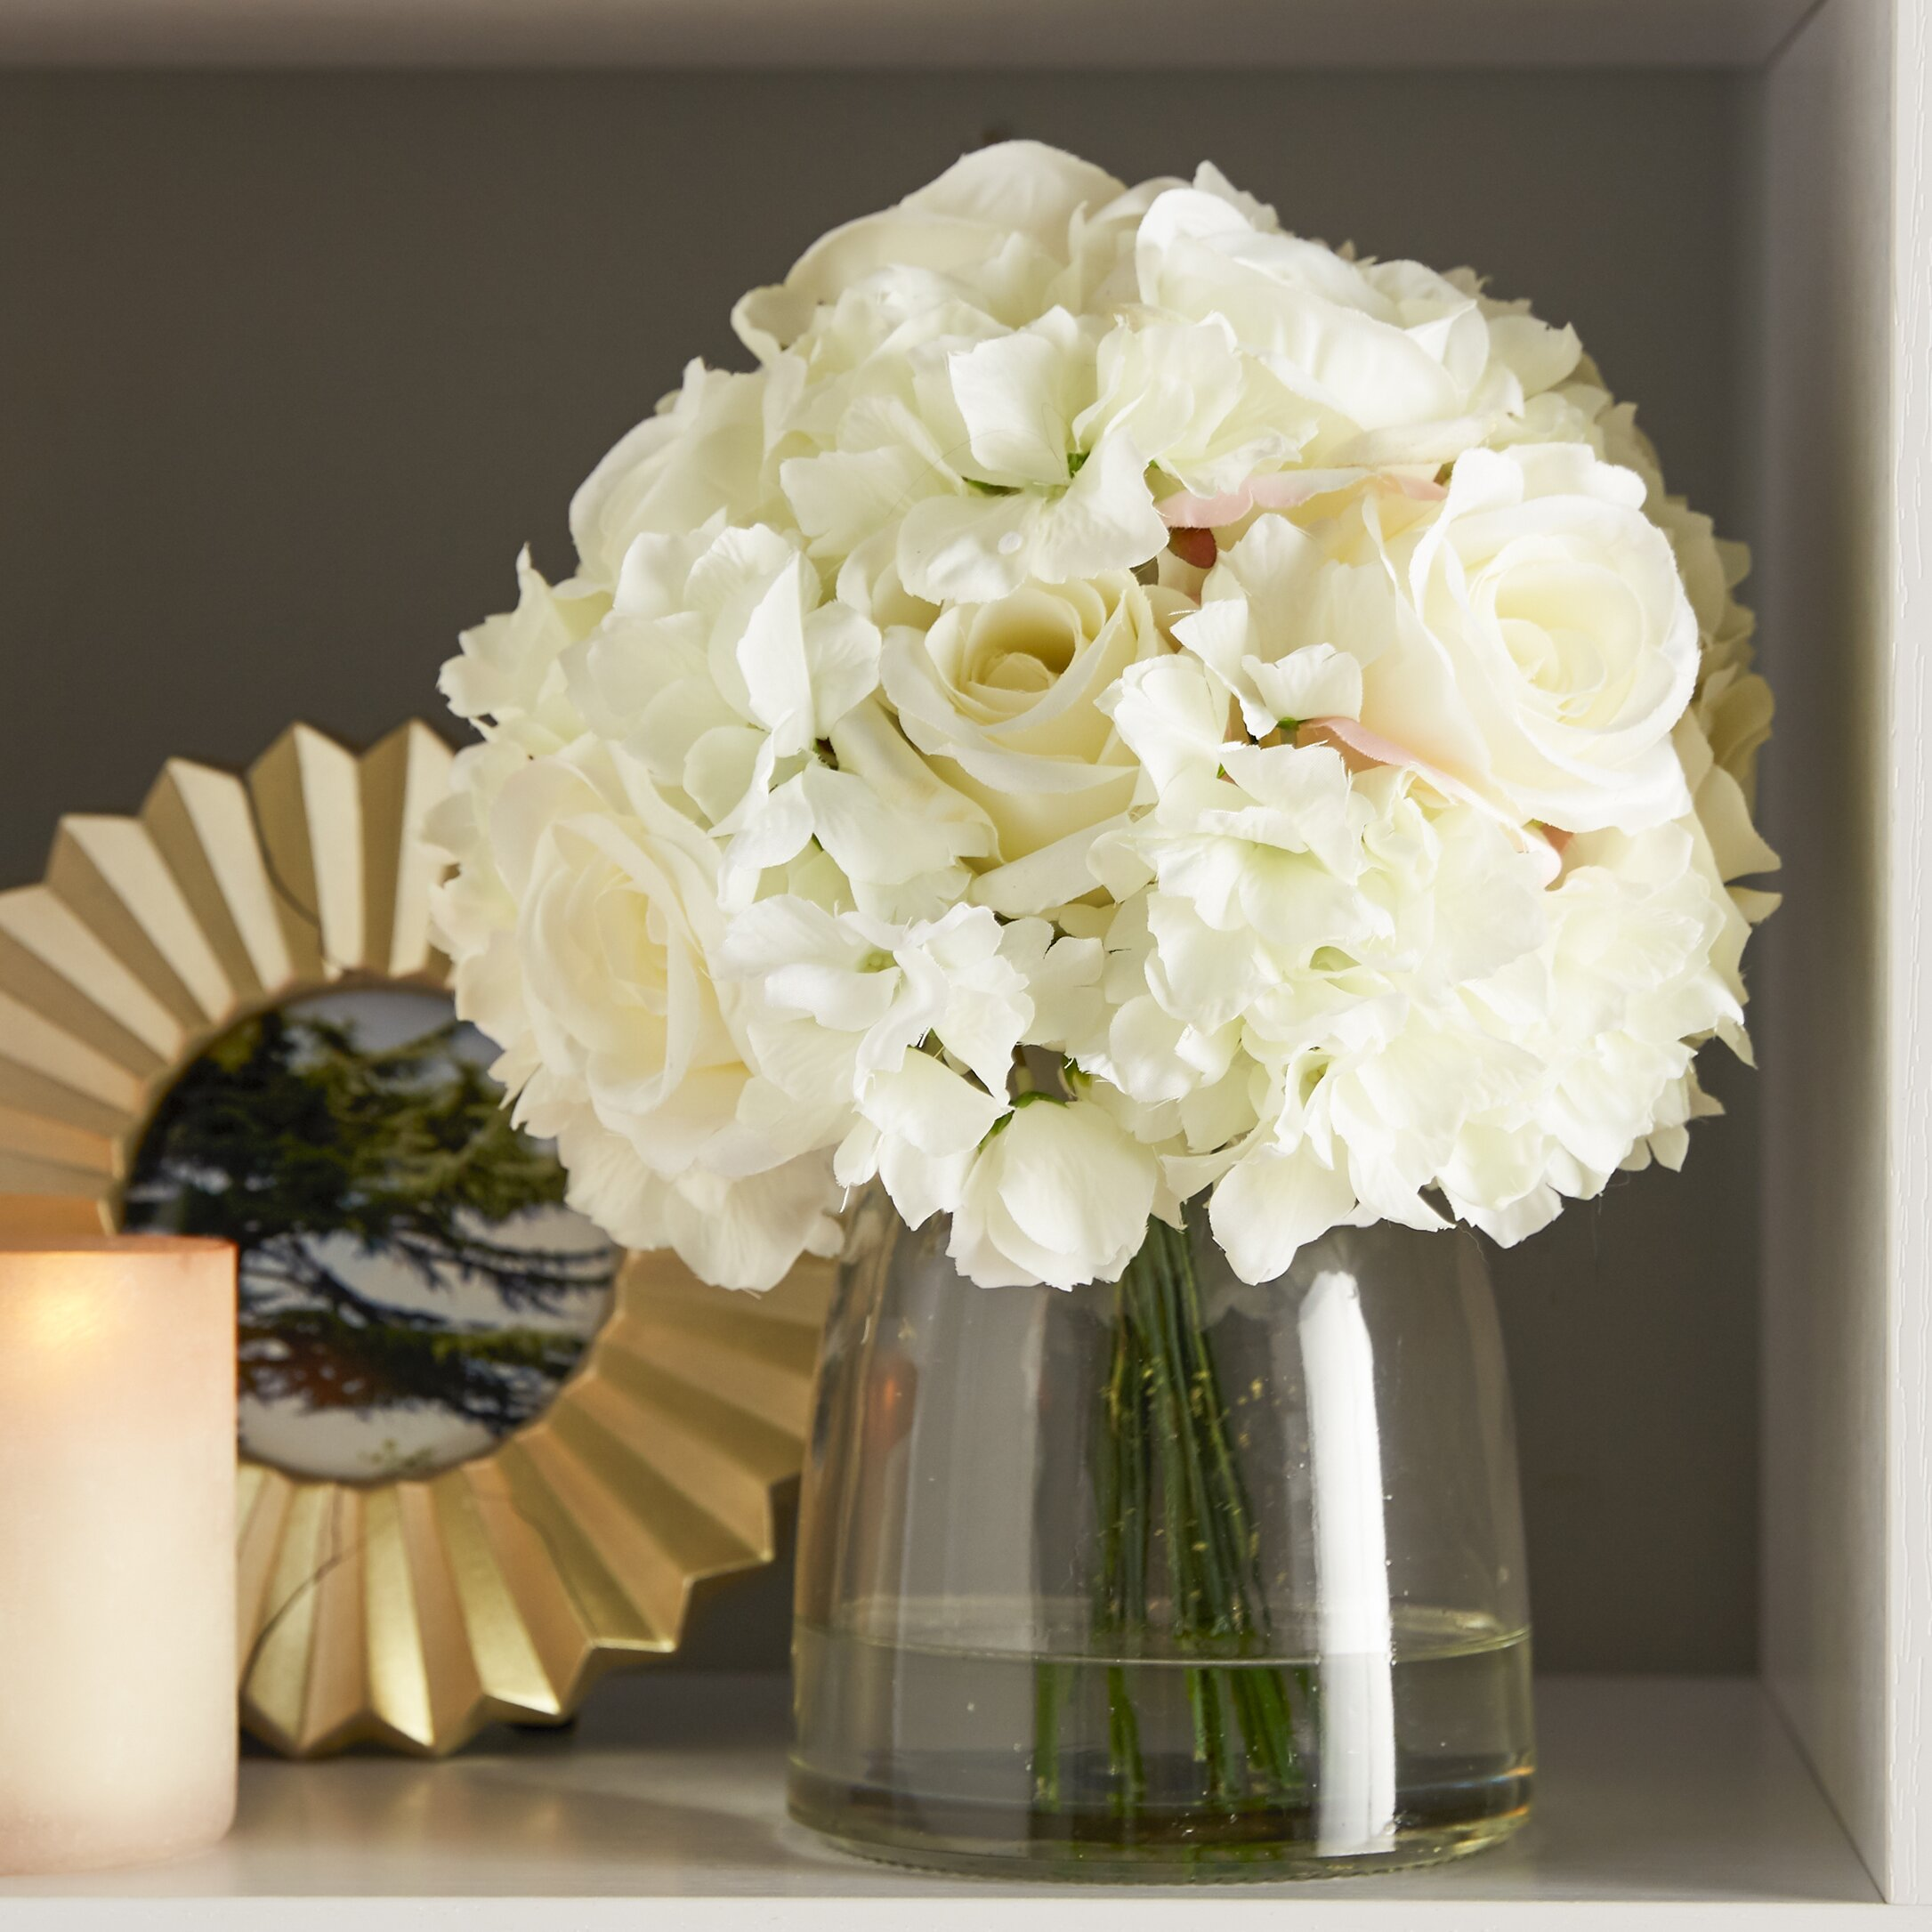 Pure Garden Hydrangea And Rose Arrangement In Glass Vase